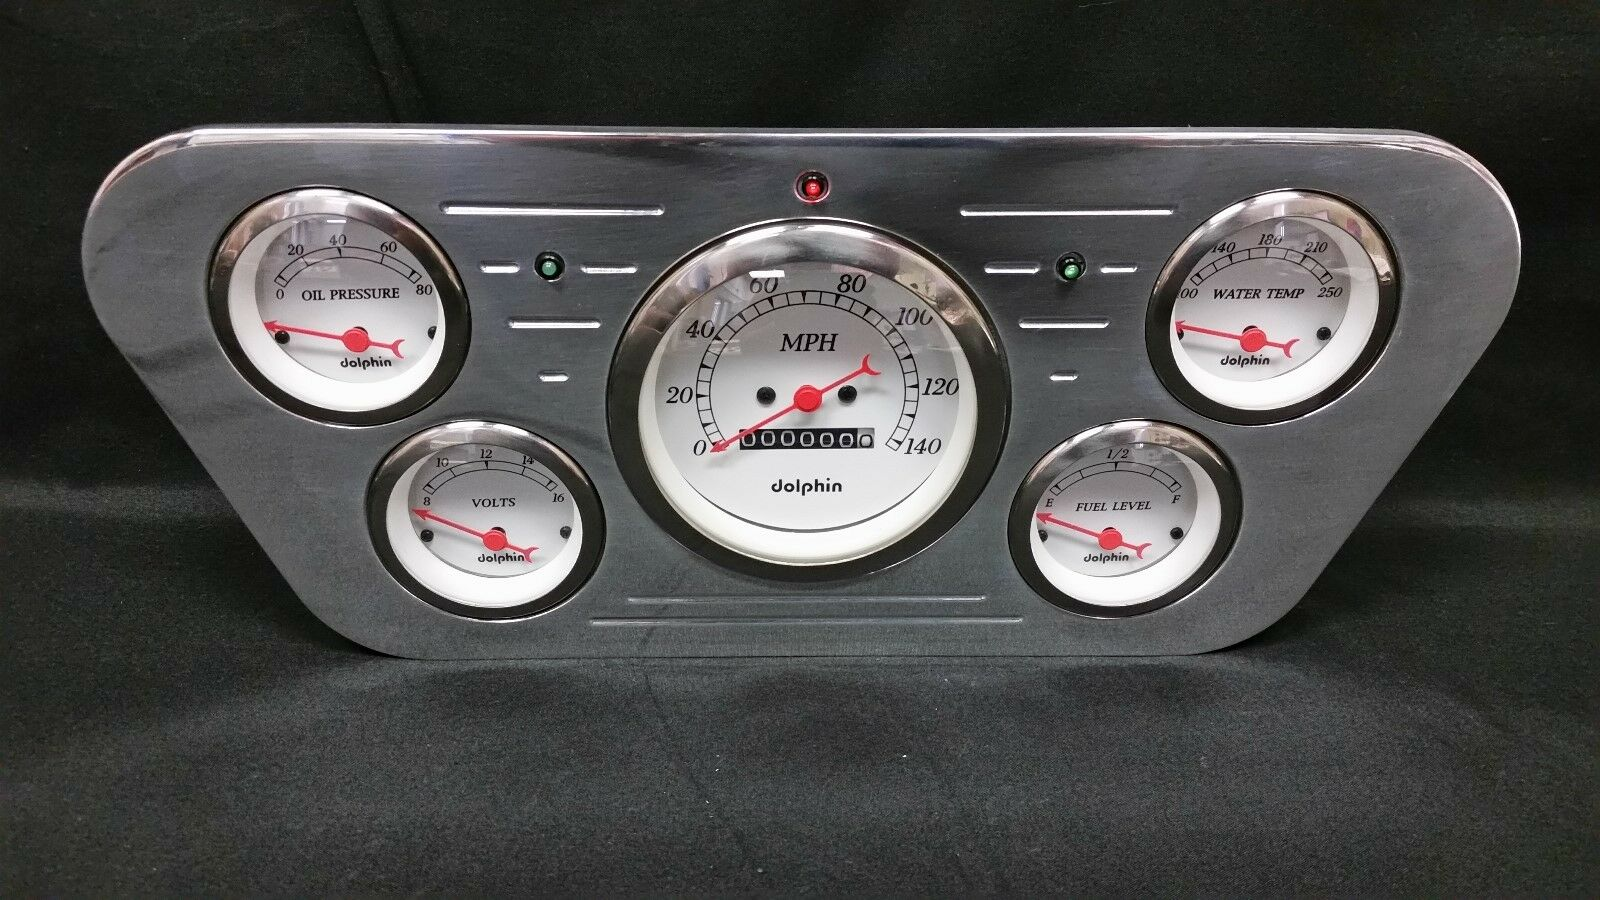 1953 1954 1955 Ford Truck 5 Gauge Gauge Cluster White 1 of 4 1953 1954 1955  Ford Truck 5 Gauge ...